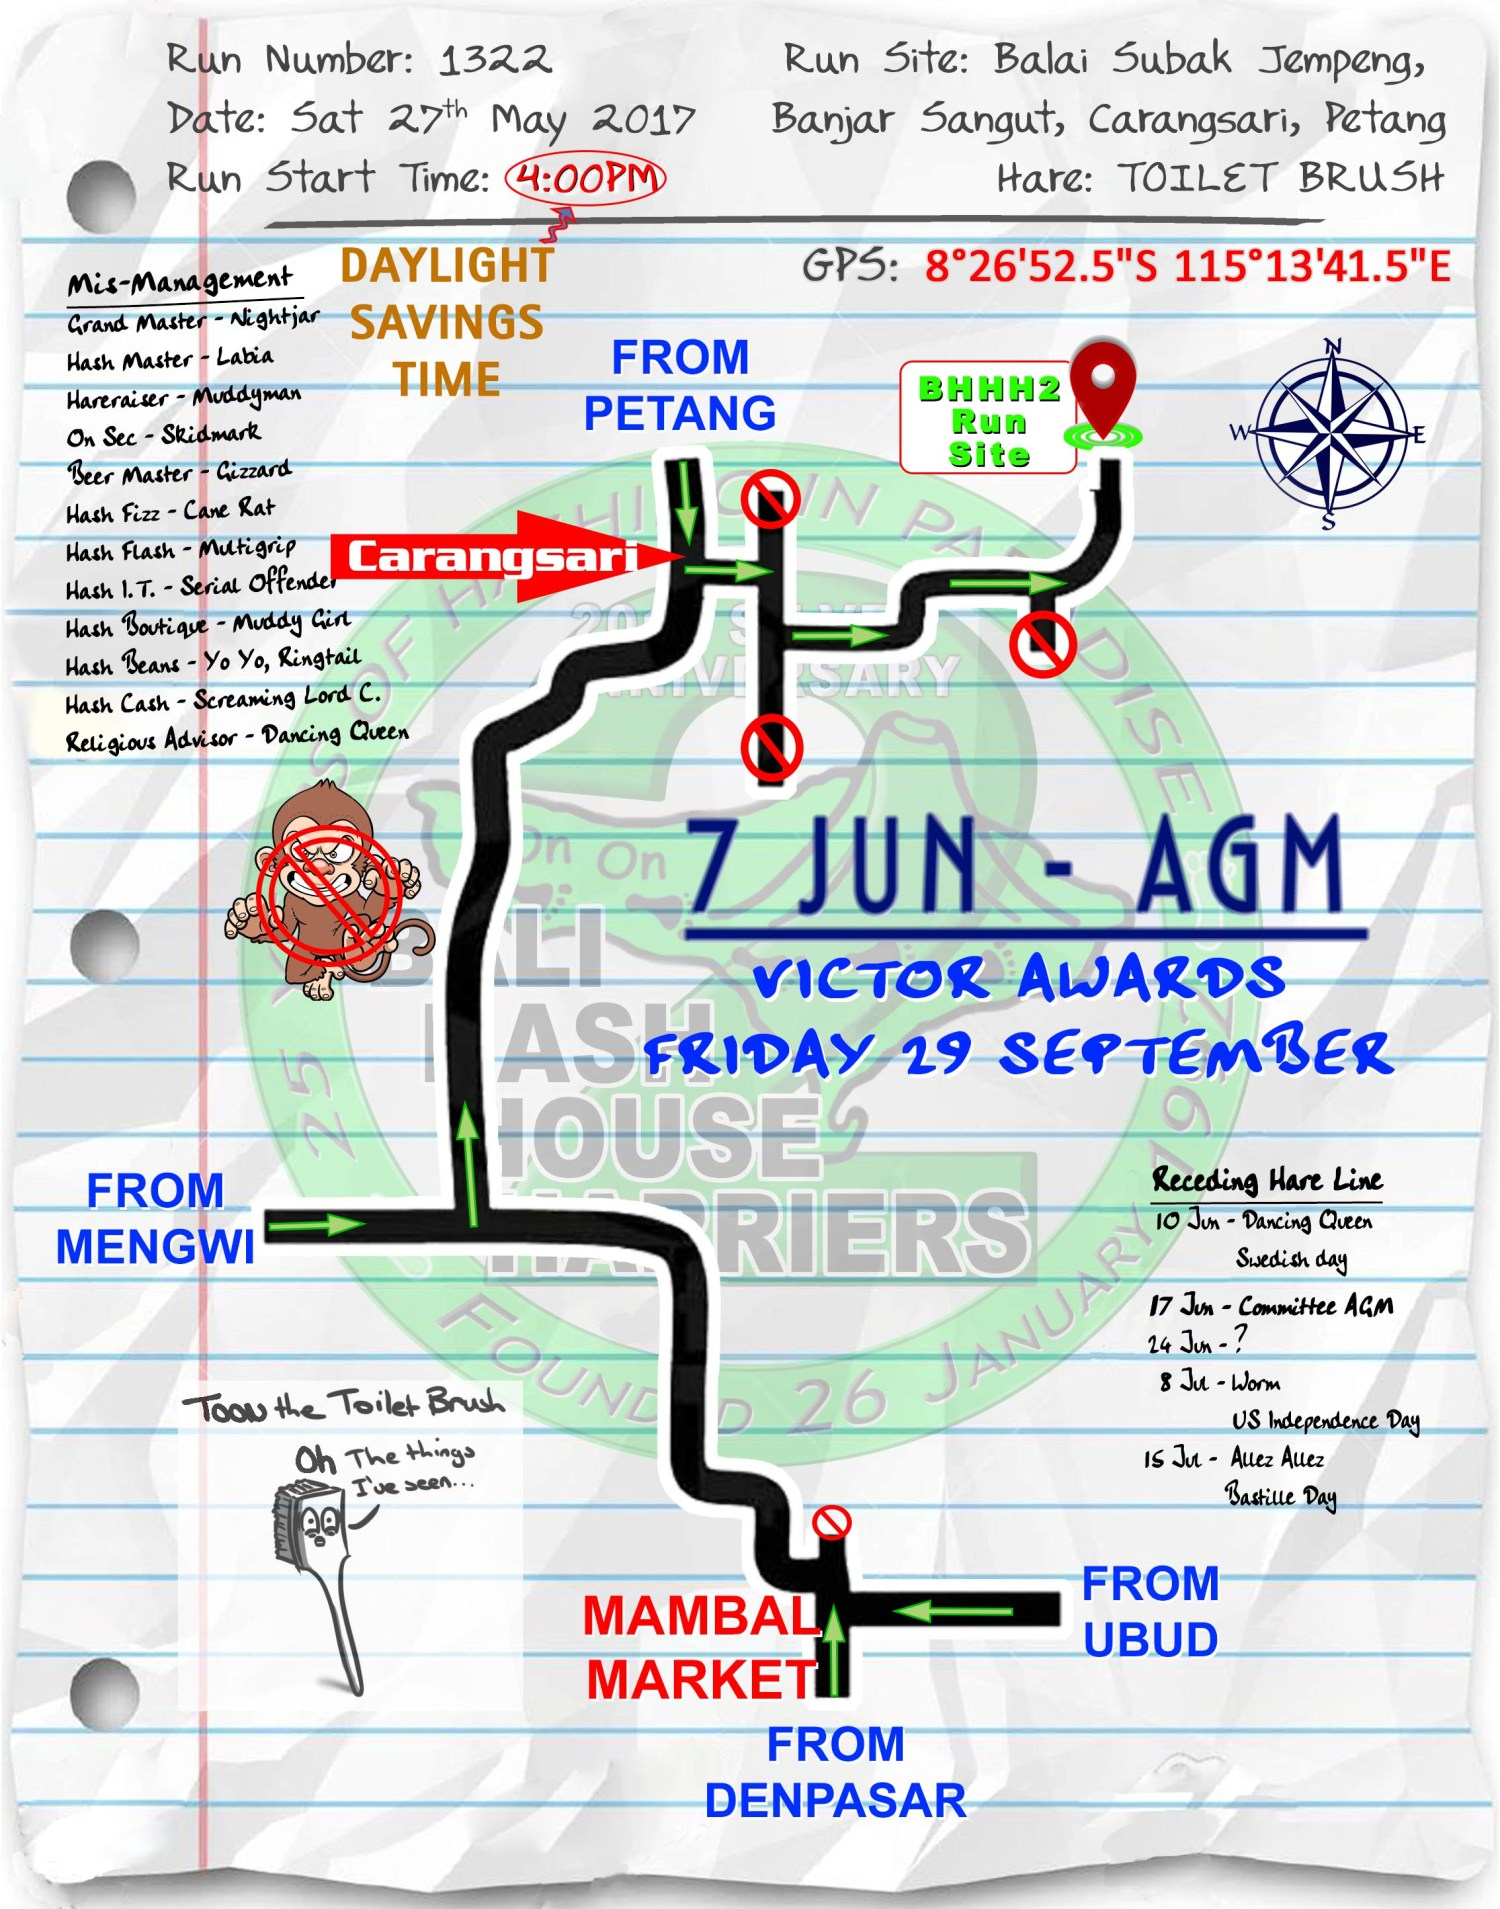 Next Run Map #1323 Balai Subak Jempeng, Carangsari Sat 03-Jun-2017